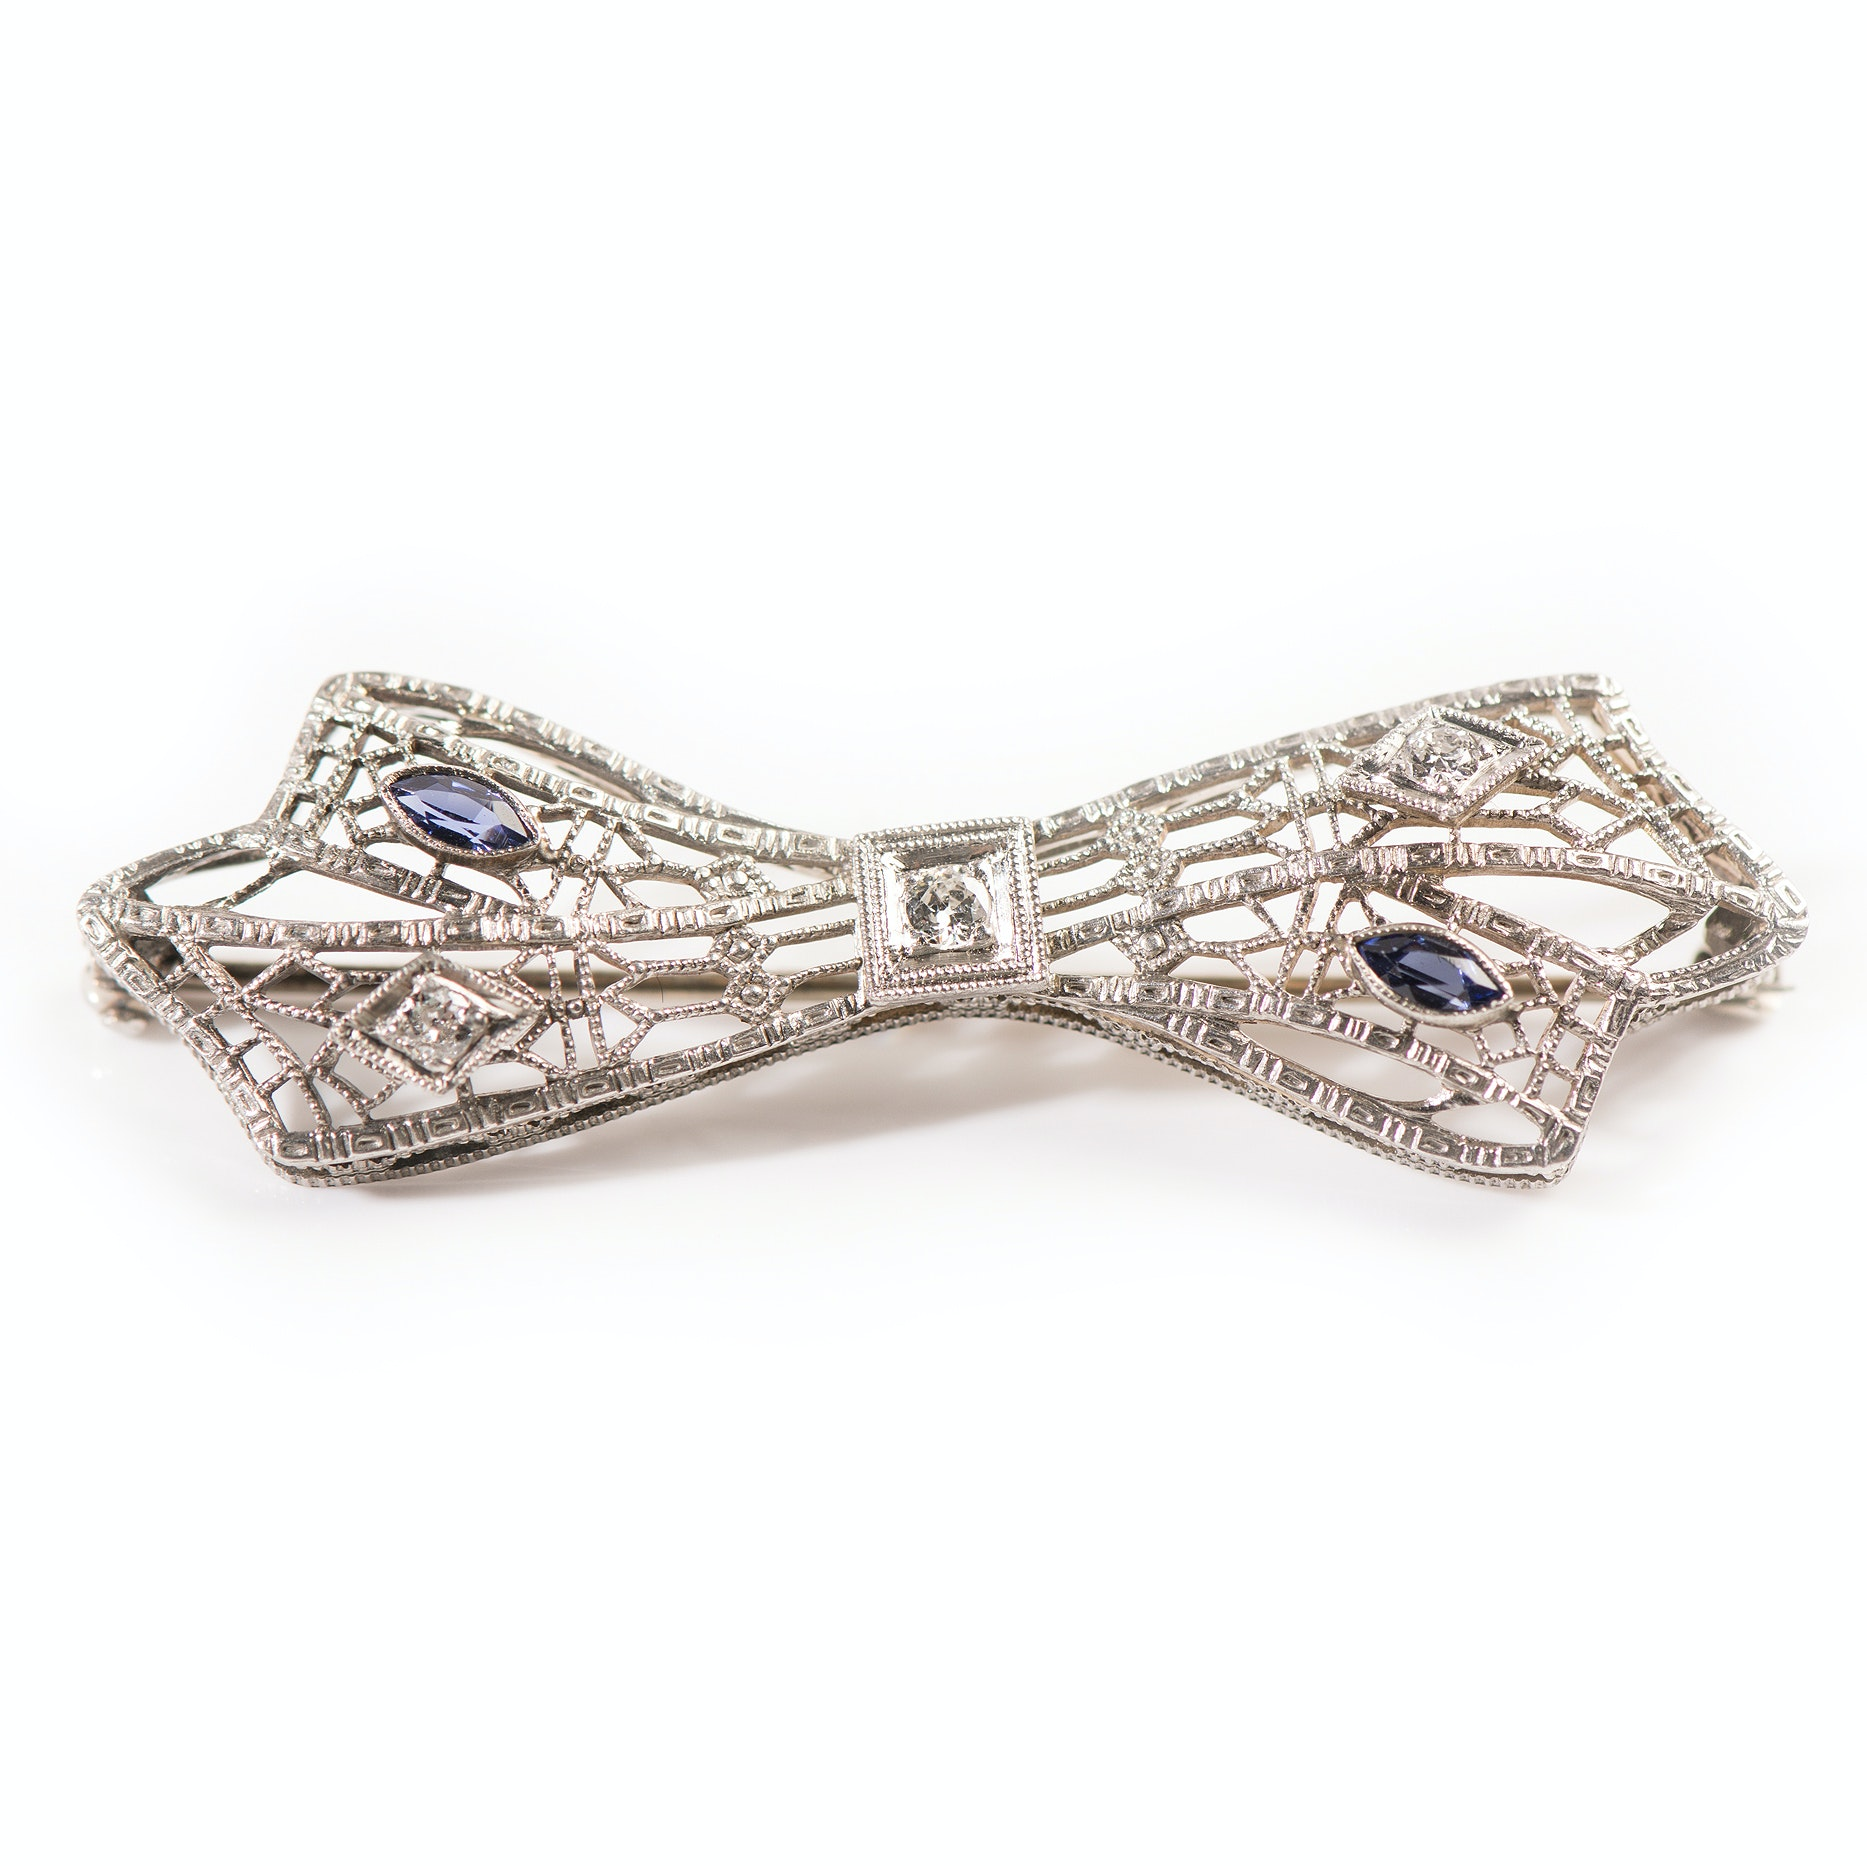 14K White Gold Diamond and Synthetic Sapphire Bow Brooch